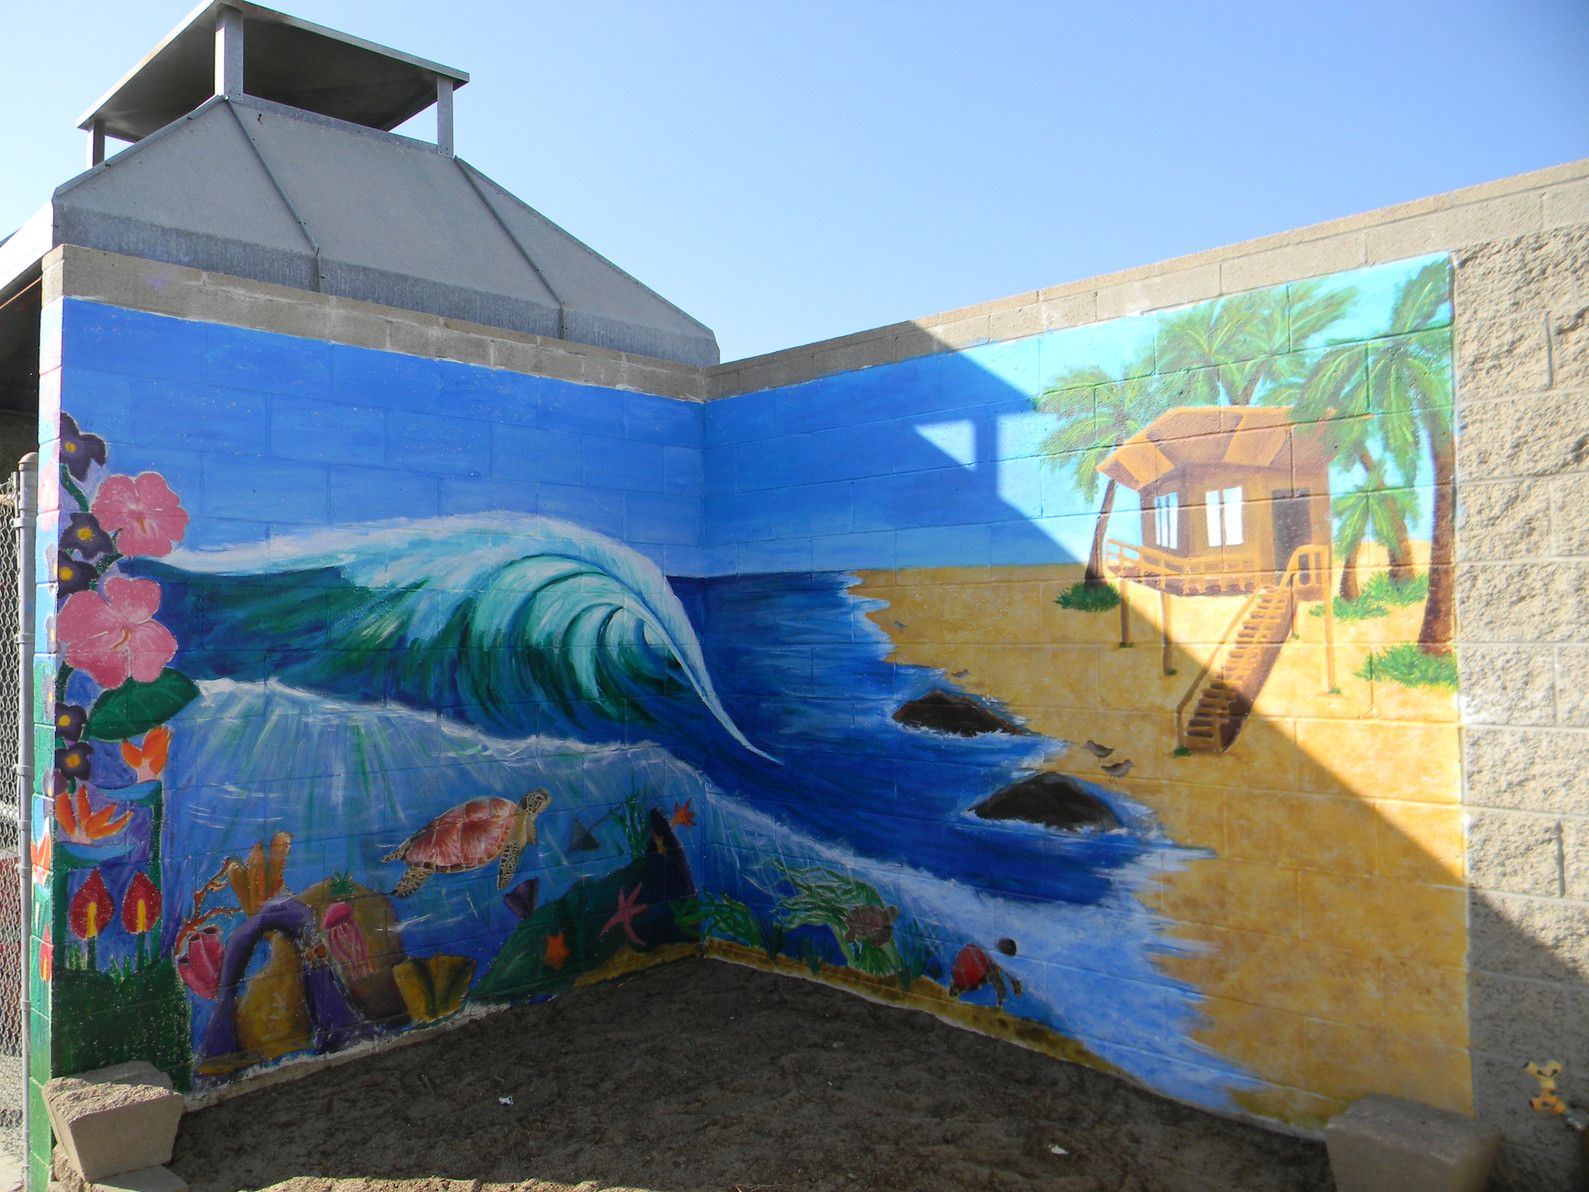 2013 I painted this mural with some fellow art students at my middle school in 8th grade.